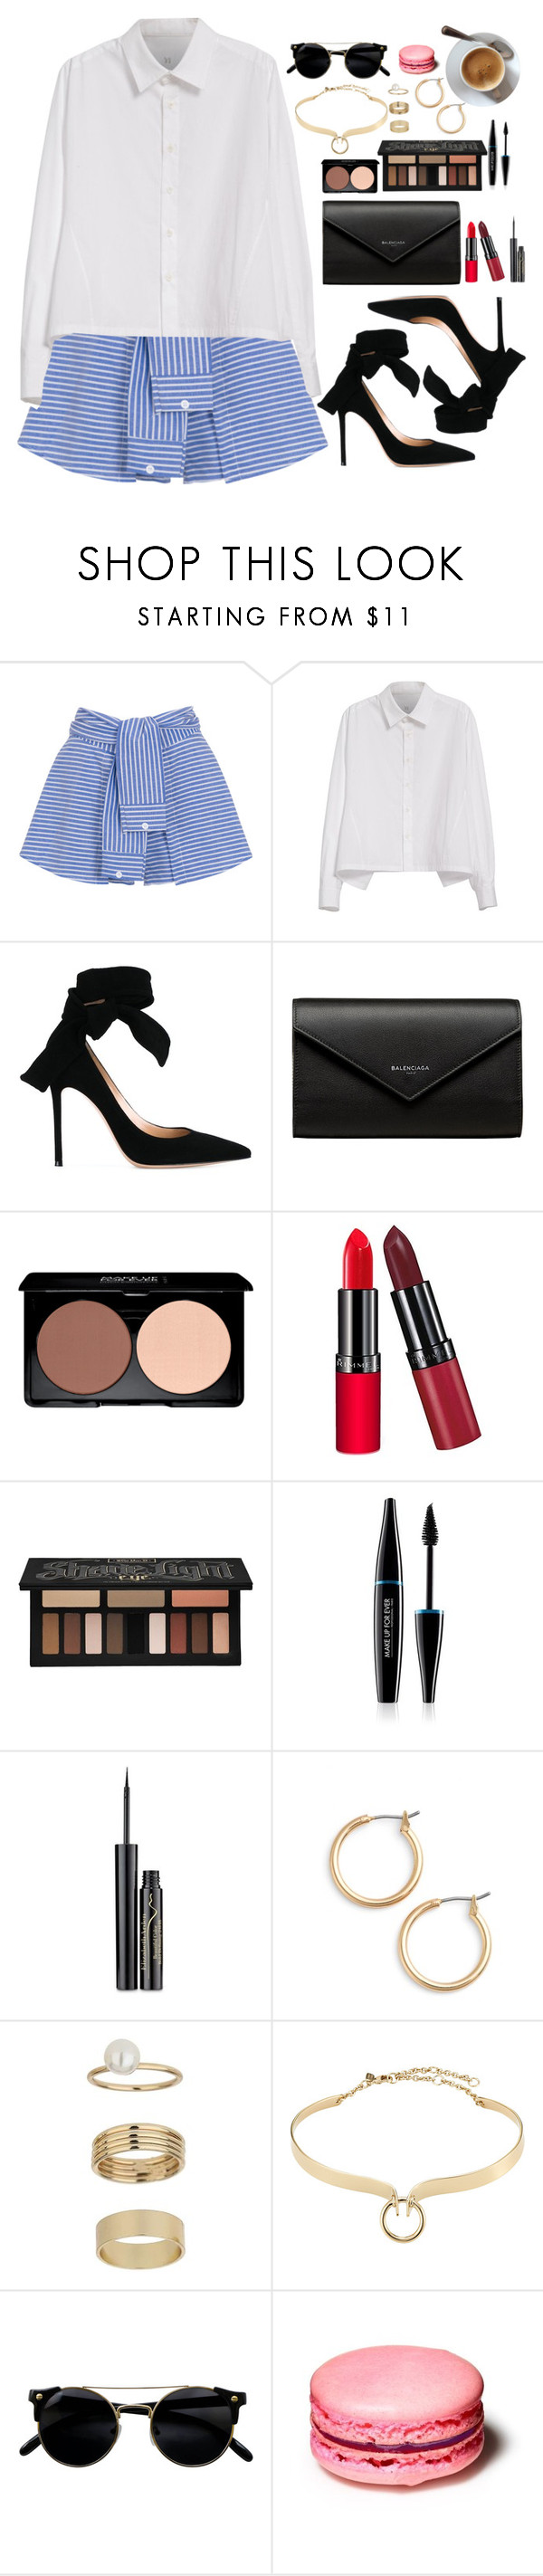 """""""Sin título #583"""" by antoalvear ❤ liked on Polyvore featuring WithChic, Y's by Yohji Yamamoto, Gianvito Rossi, Balenciaga, Rimmel, Kat Von D, MAKE UP FOR EVER, Elizabeth Arden, Nordstrom and Miss Selfridge"""